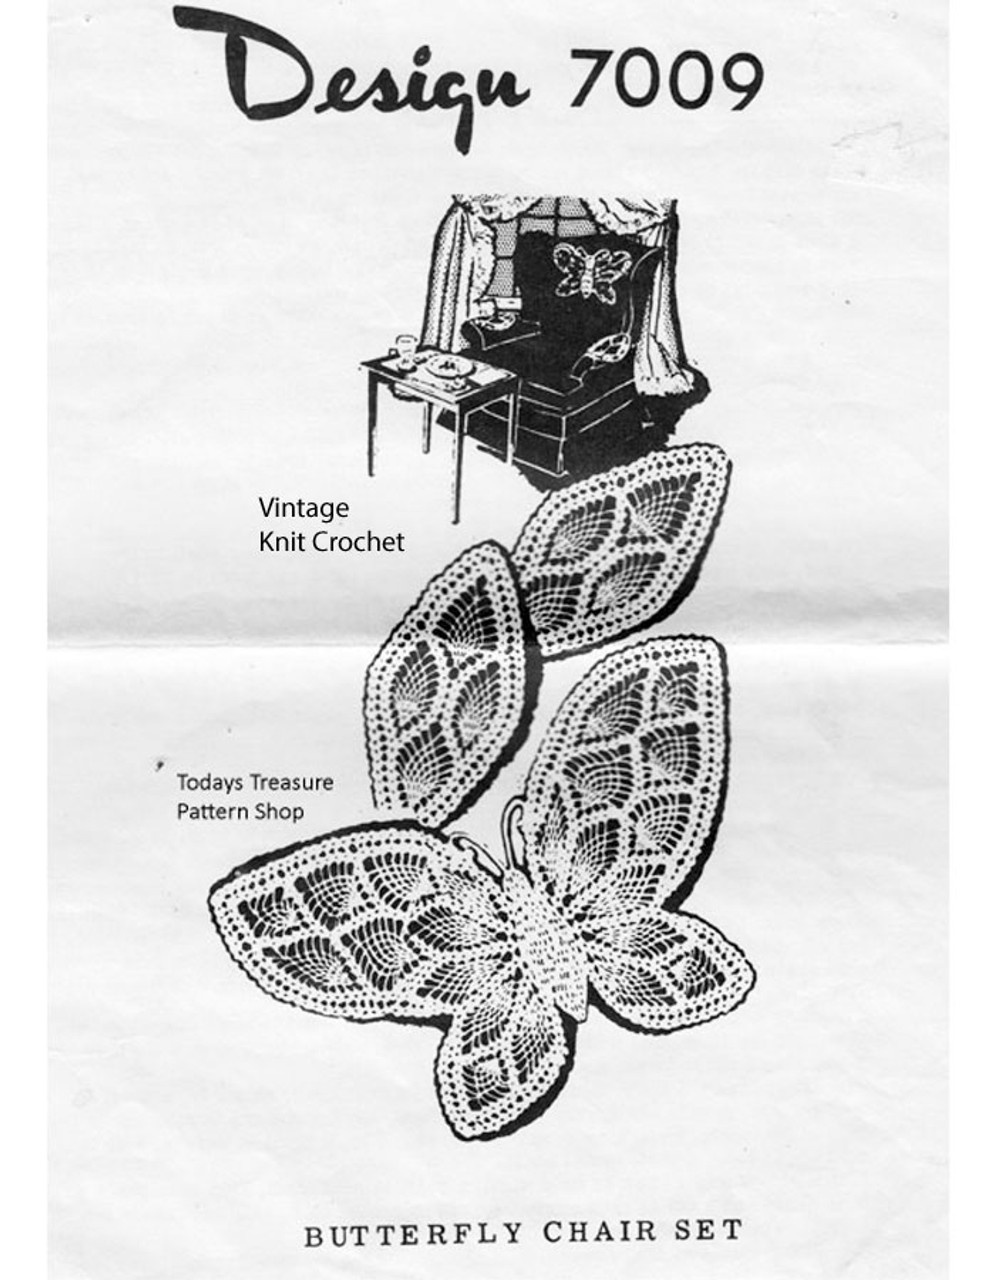 Crochet Butterfly Chair Set Pattern, Alice Brooks 7009